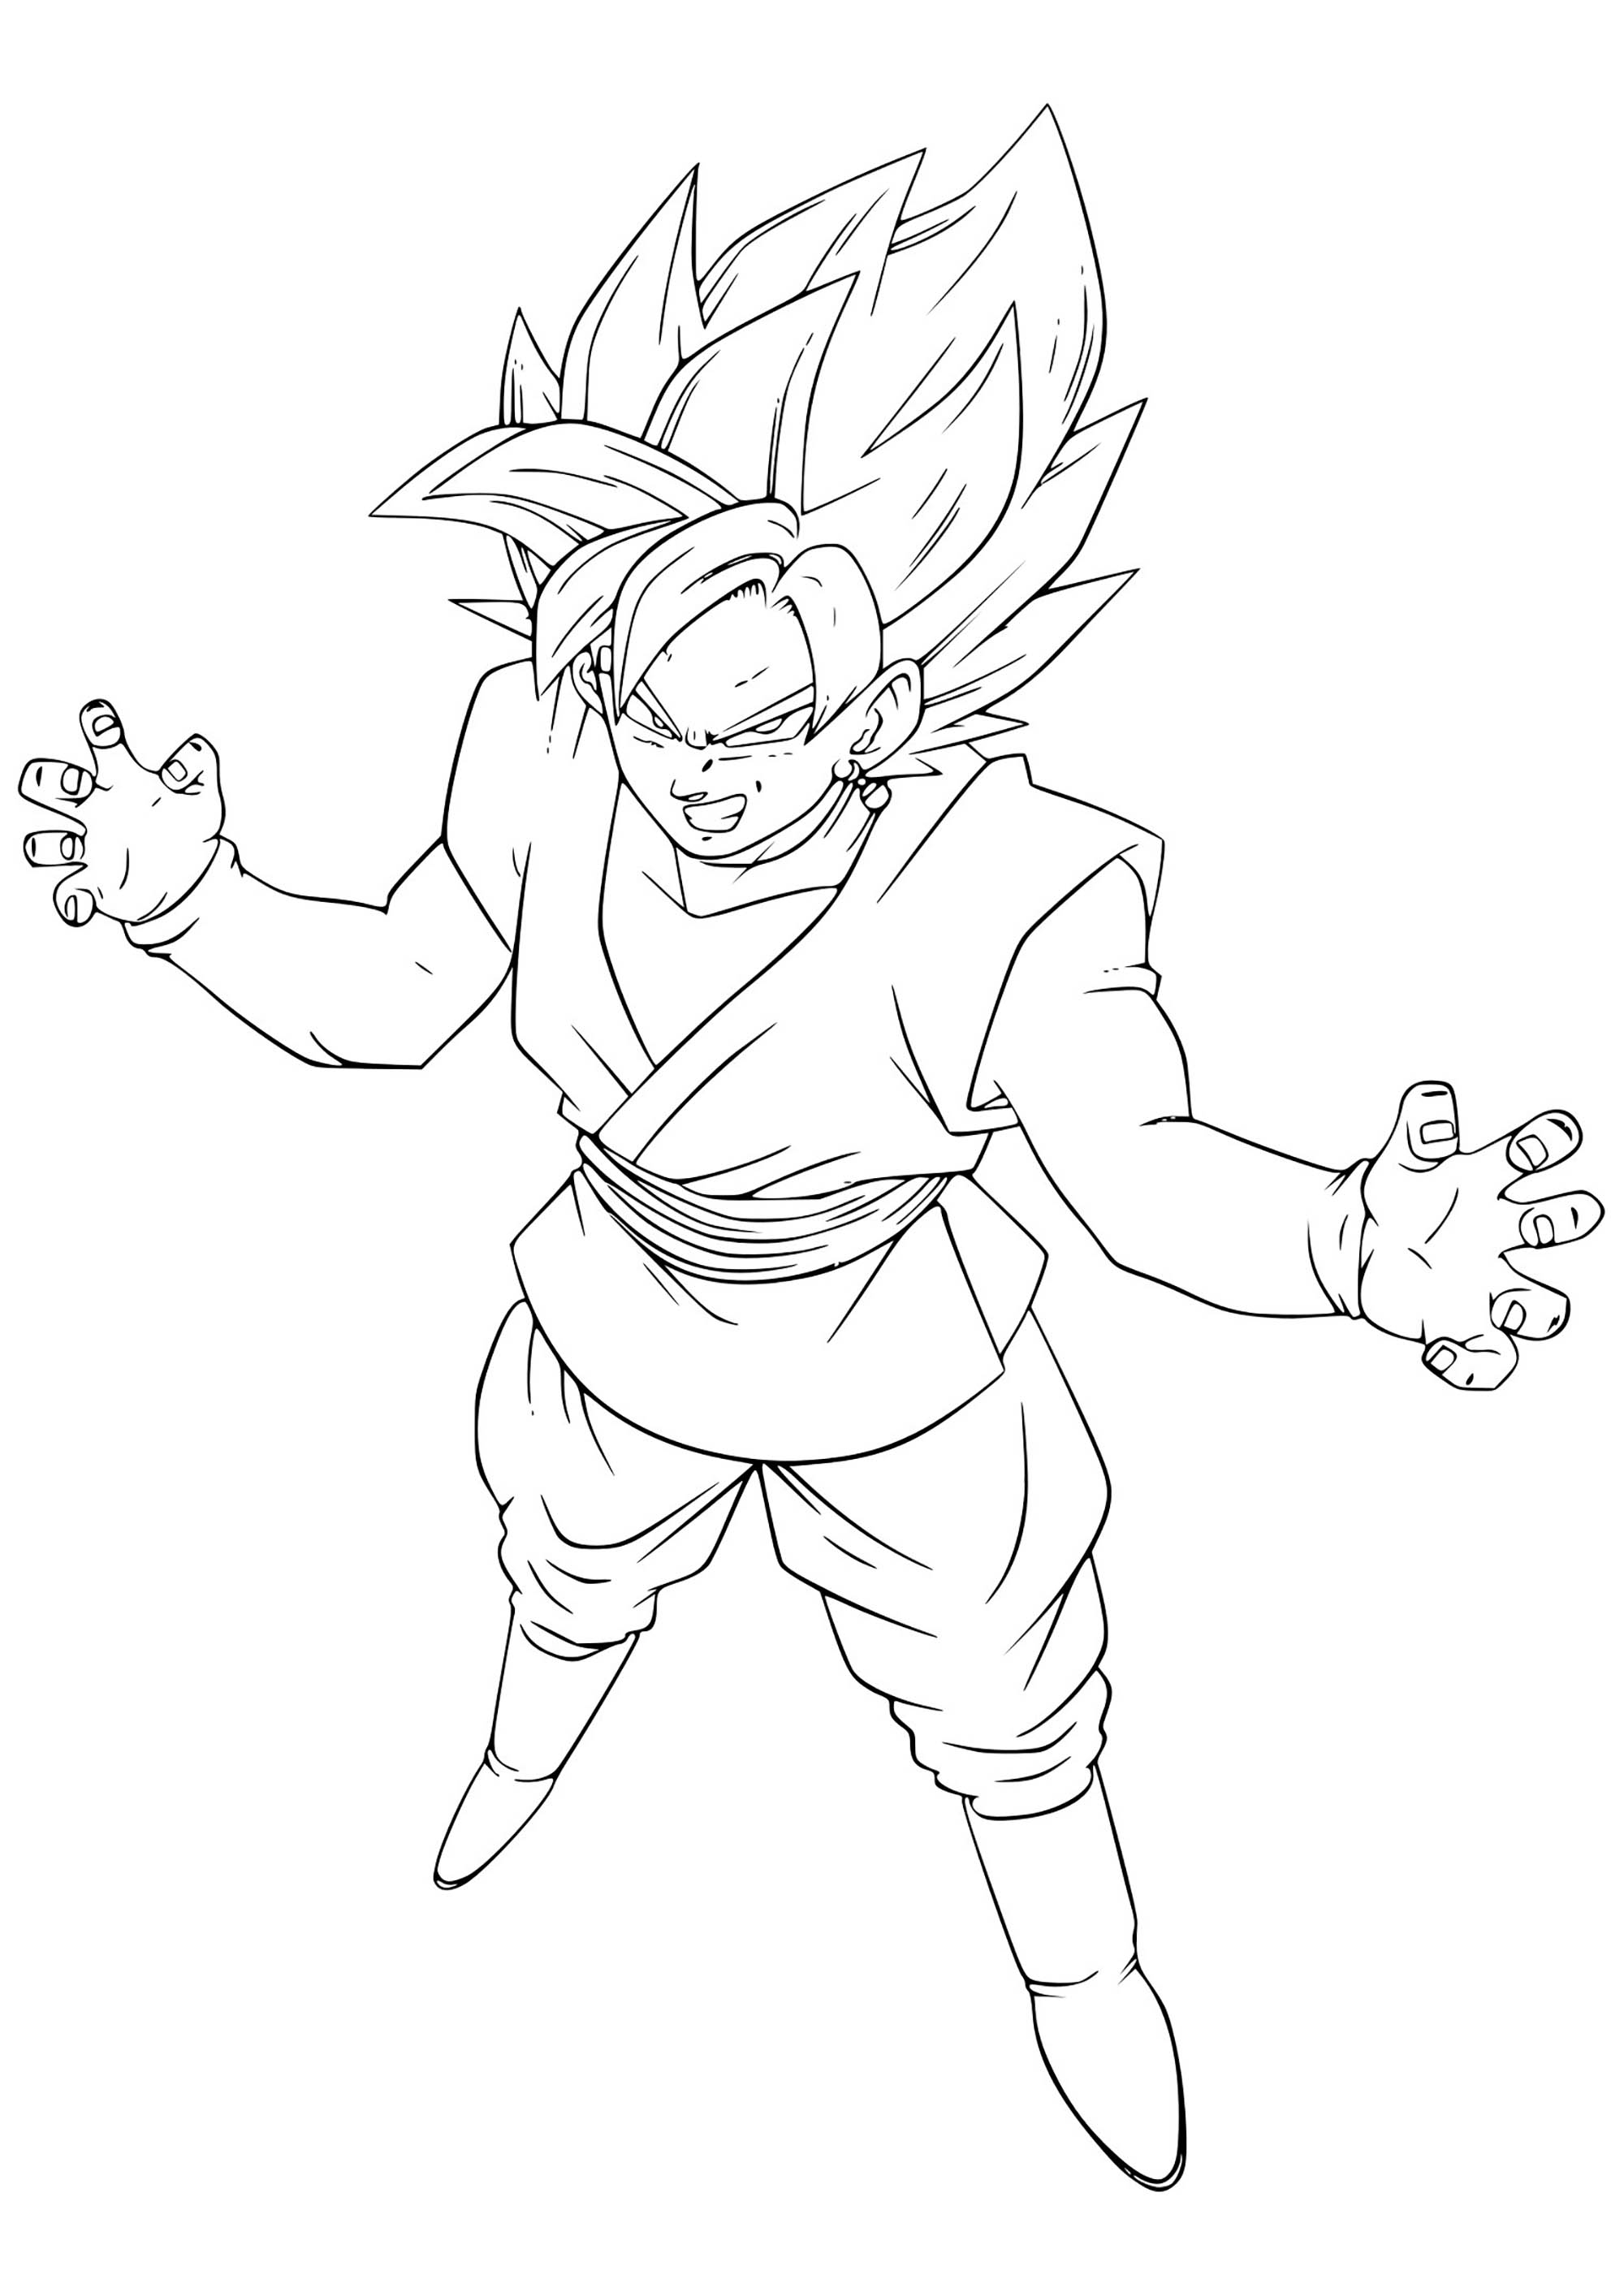 goku printable coloring pages coloring page dragon ball z goku dragon ball goku coloring goku printable pages